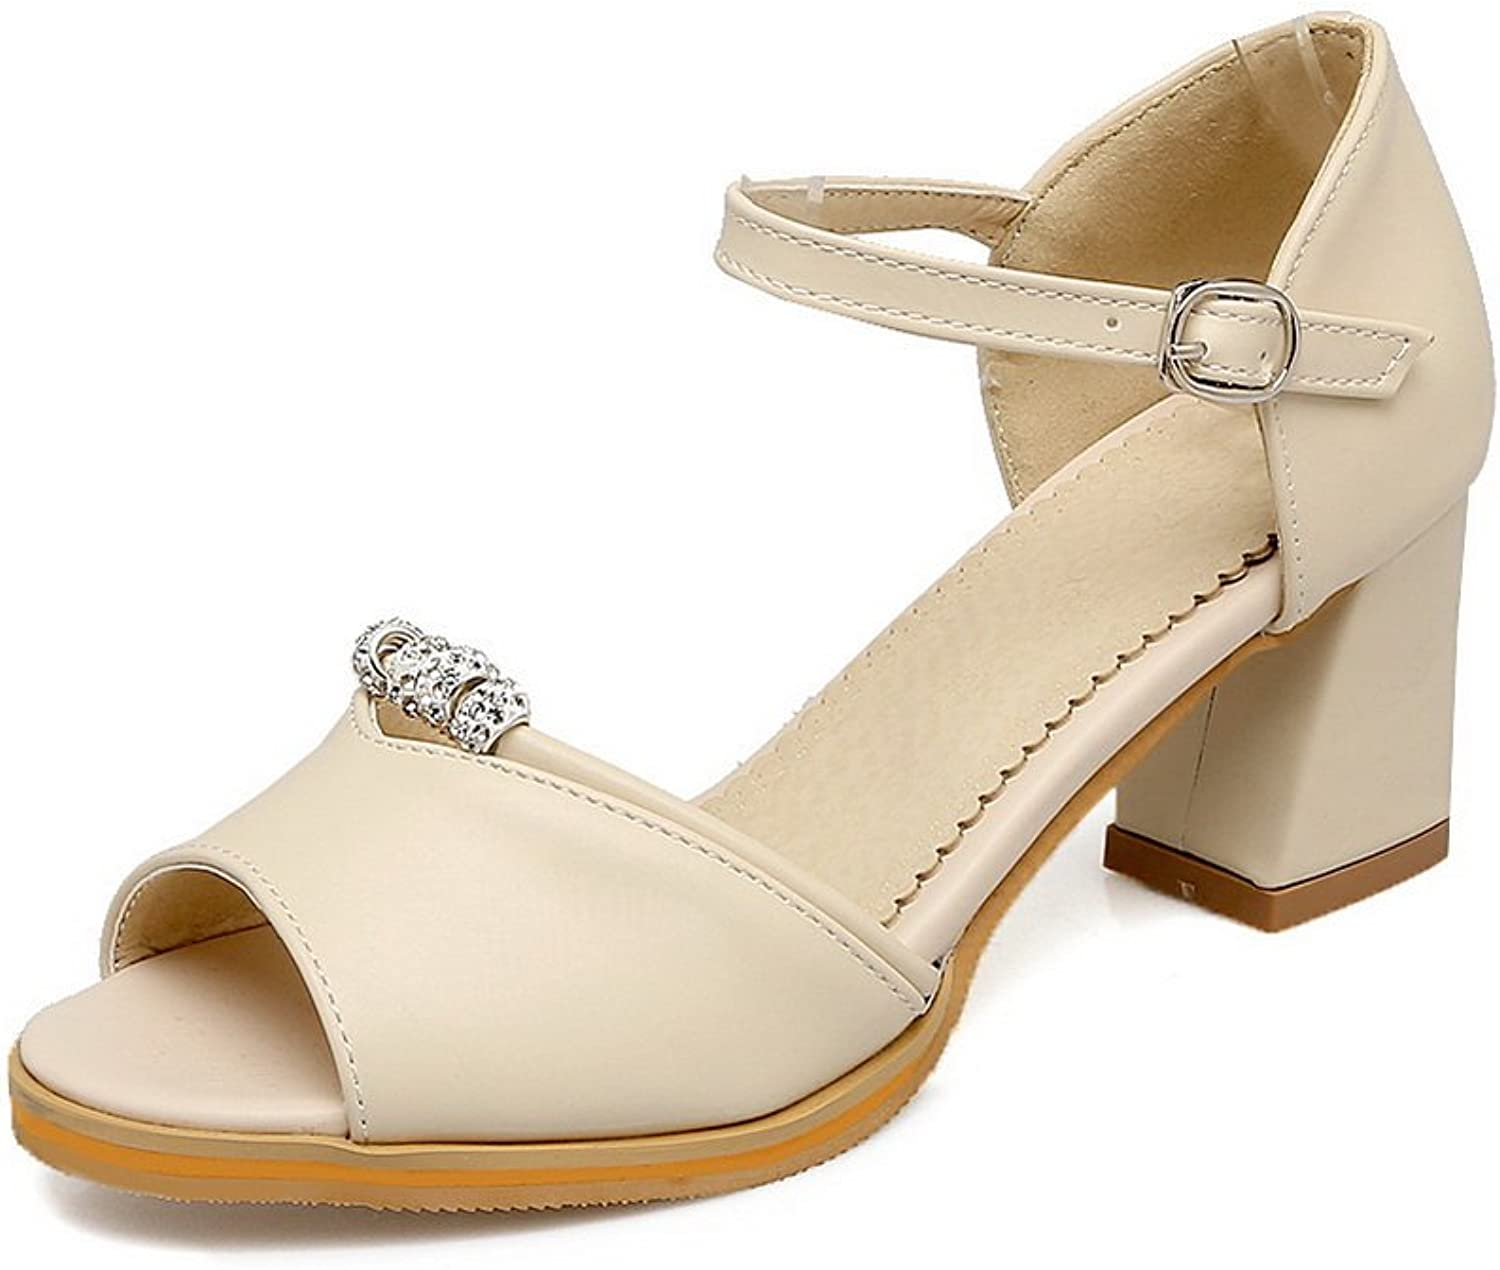 1TO9 Womens Cold Lining Dress Non-Marking Urethane Sandals MJS03345